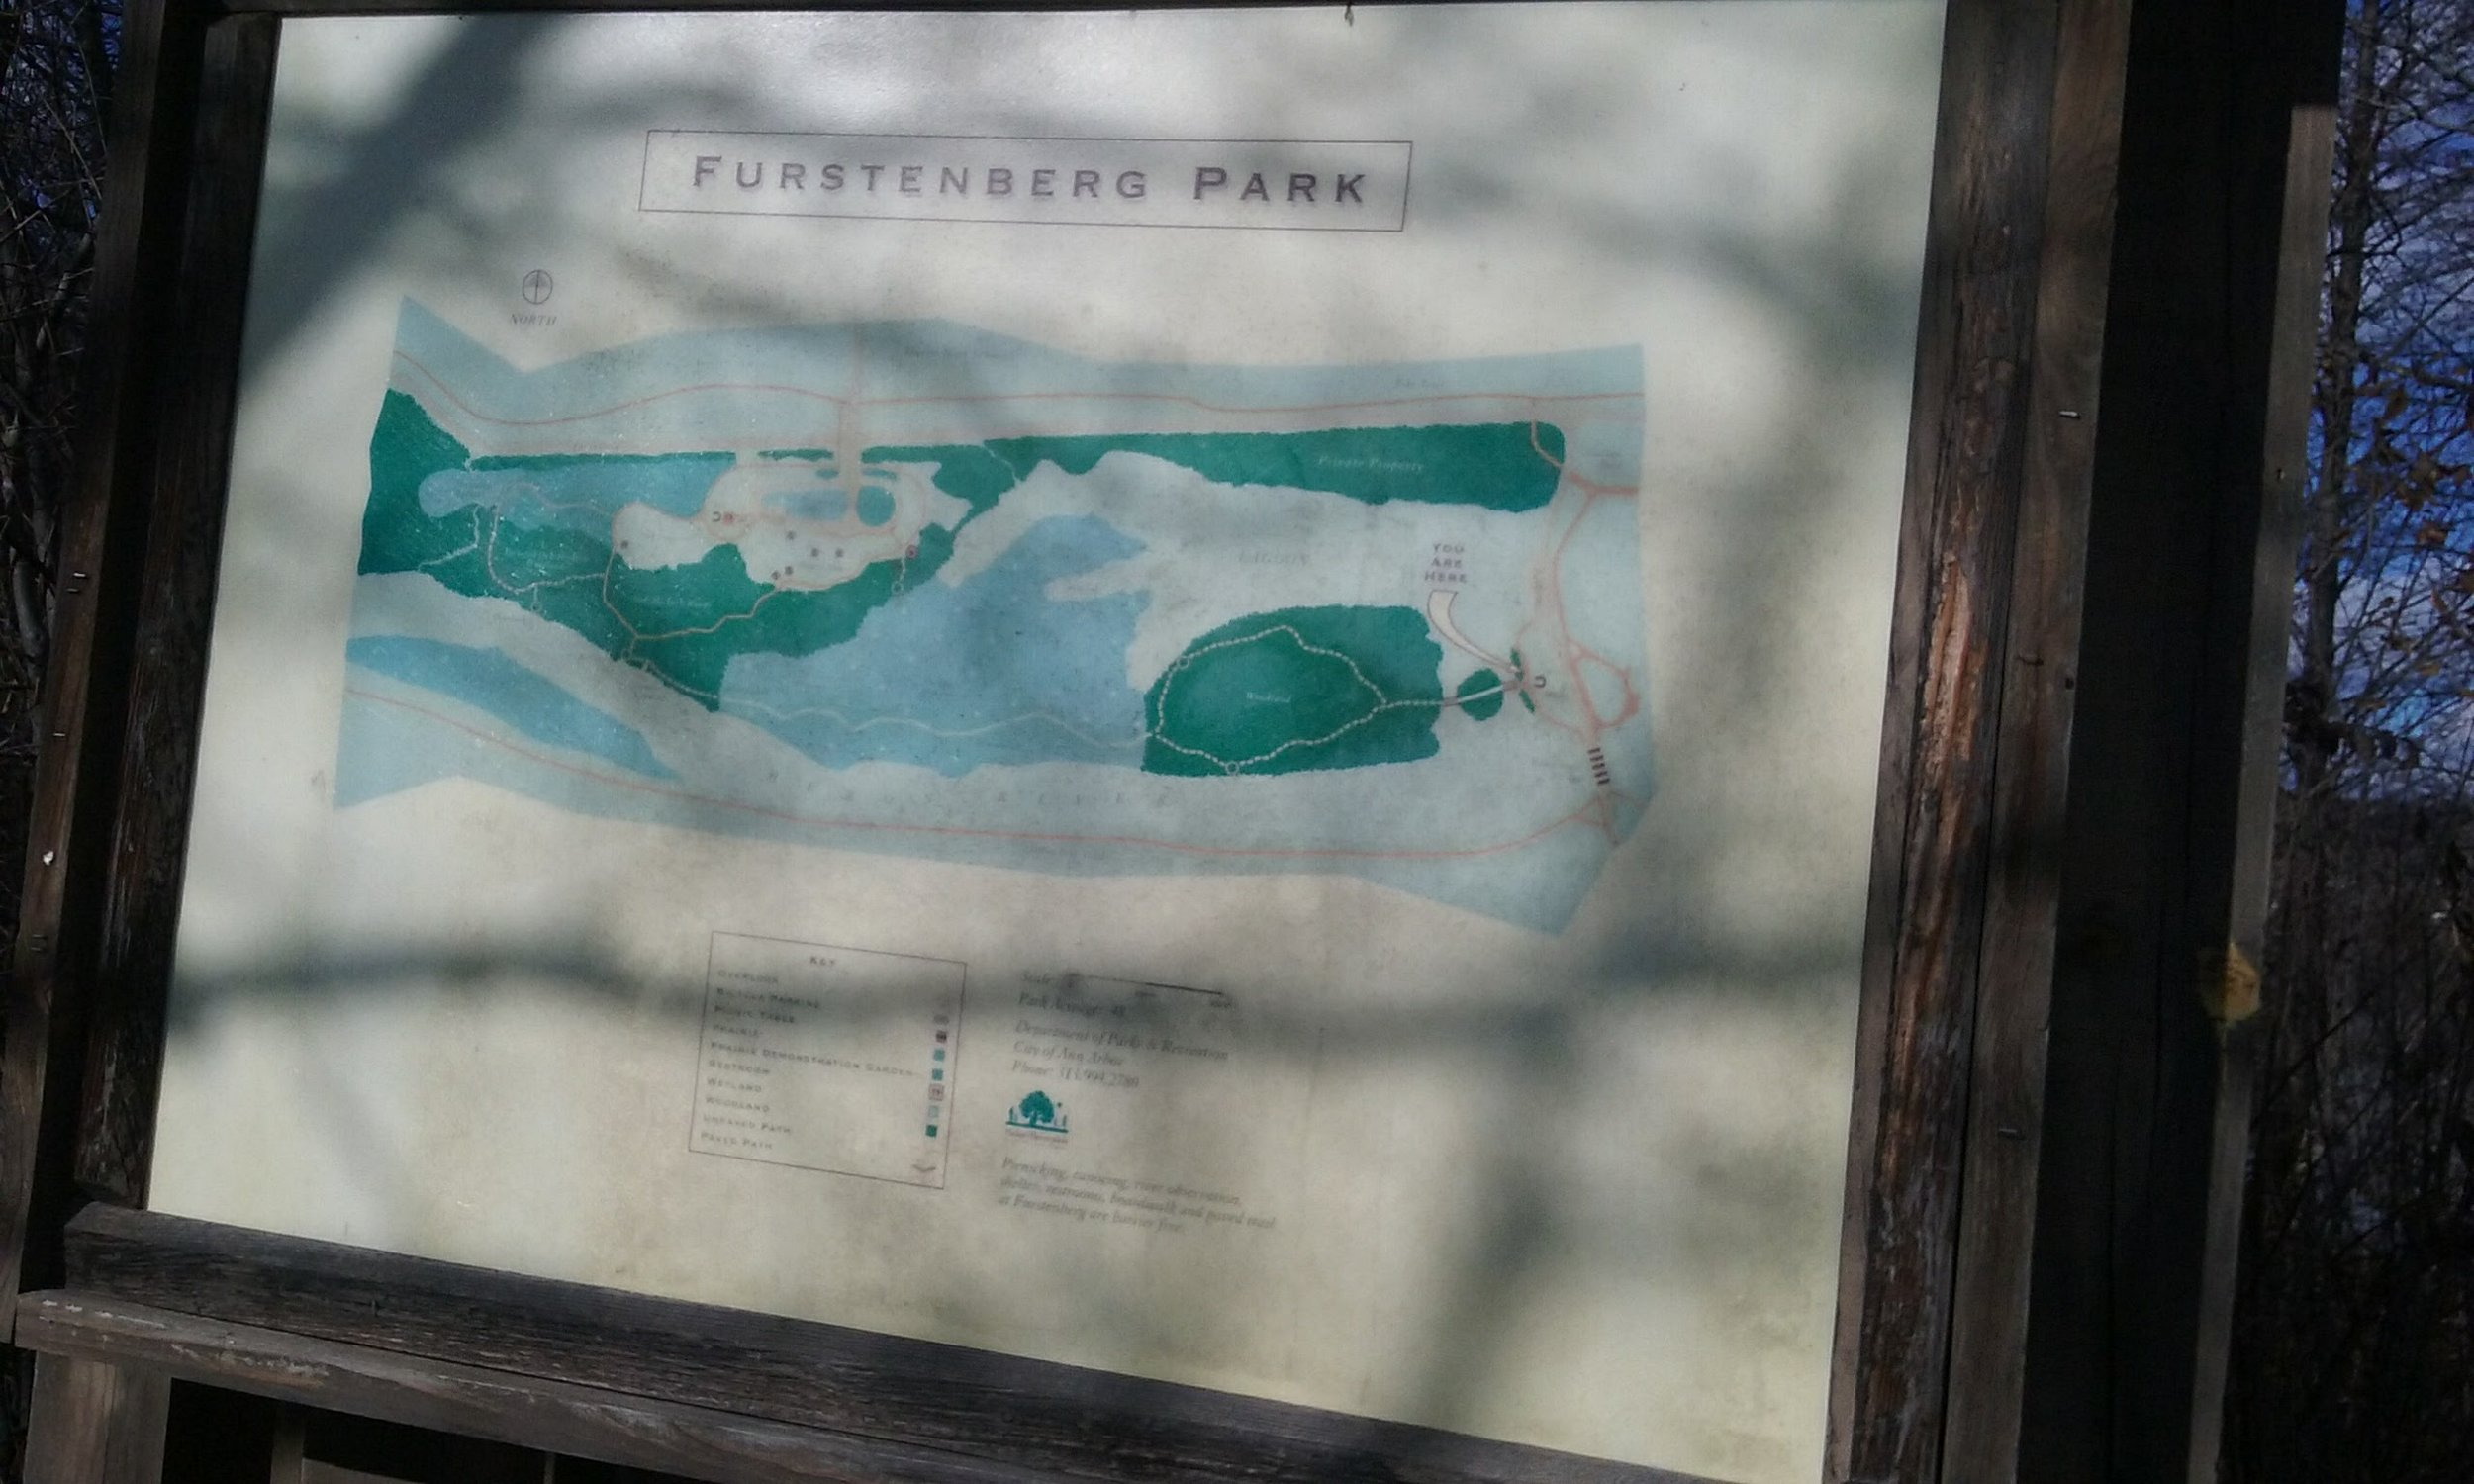 A Map at the Trail Head